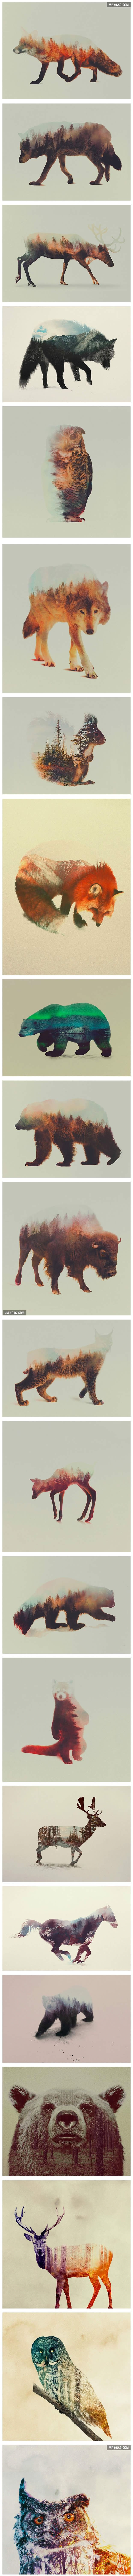 These Double-Exposure Animal Portraits Are Stunningly Beautiful (By Andreas Lie)